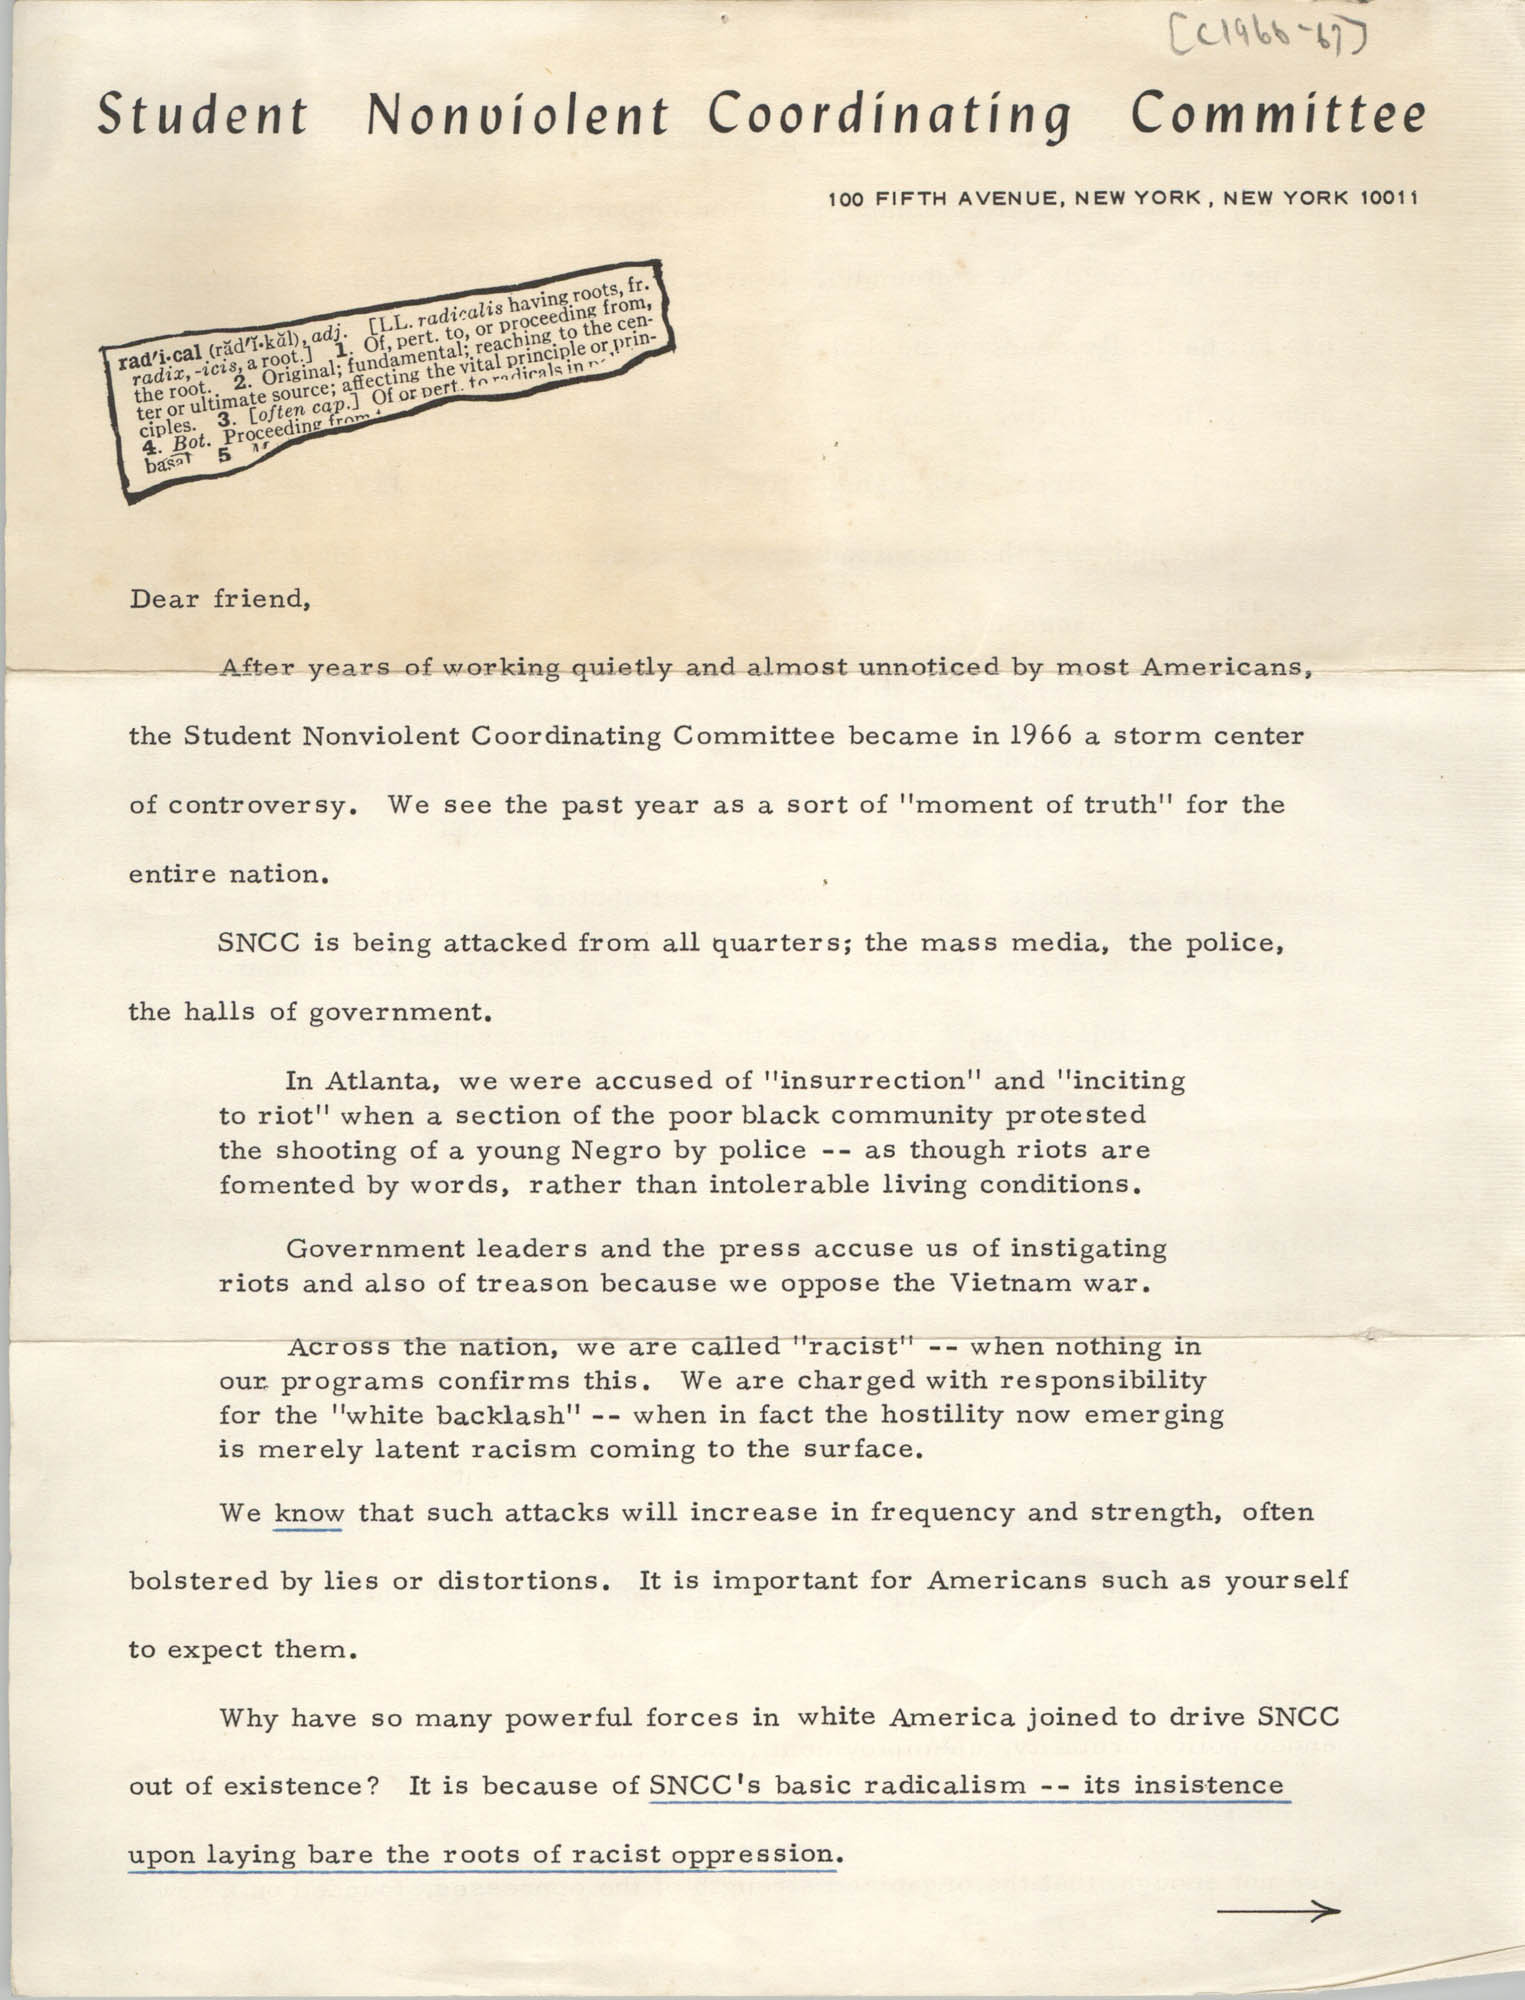 Letter from Stokely Carmichael to Friends of the Student Nonviolent Coordinating Committee, 1966